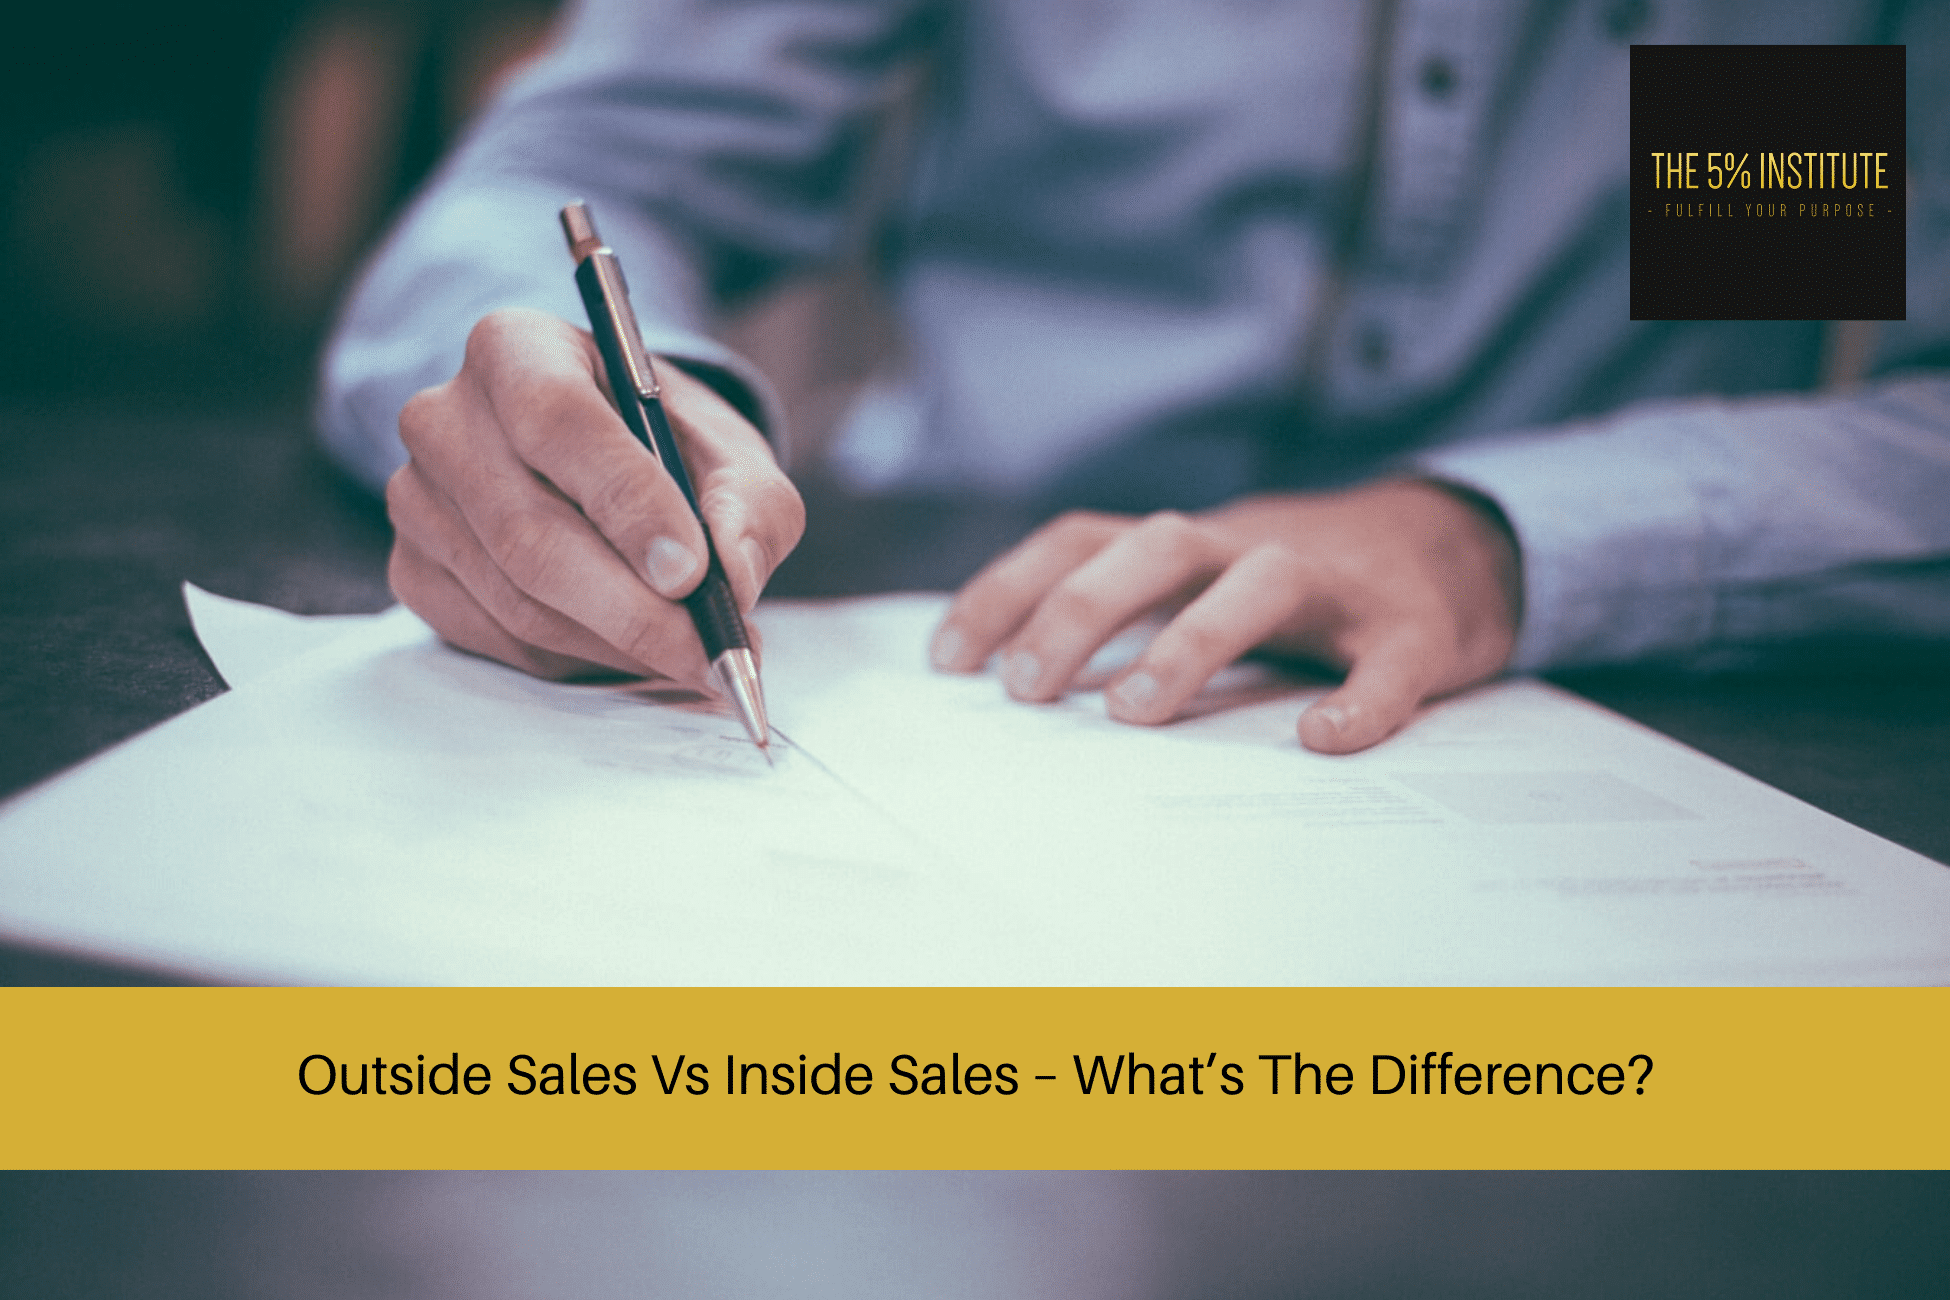 Outside Sales Vs Inside Sales